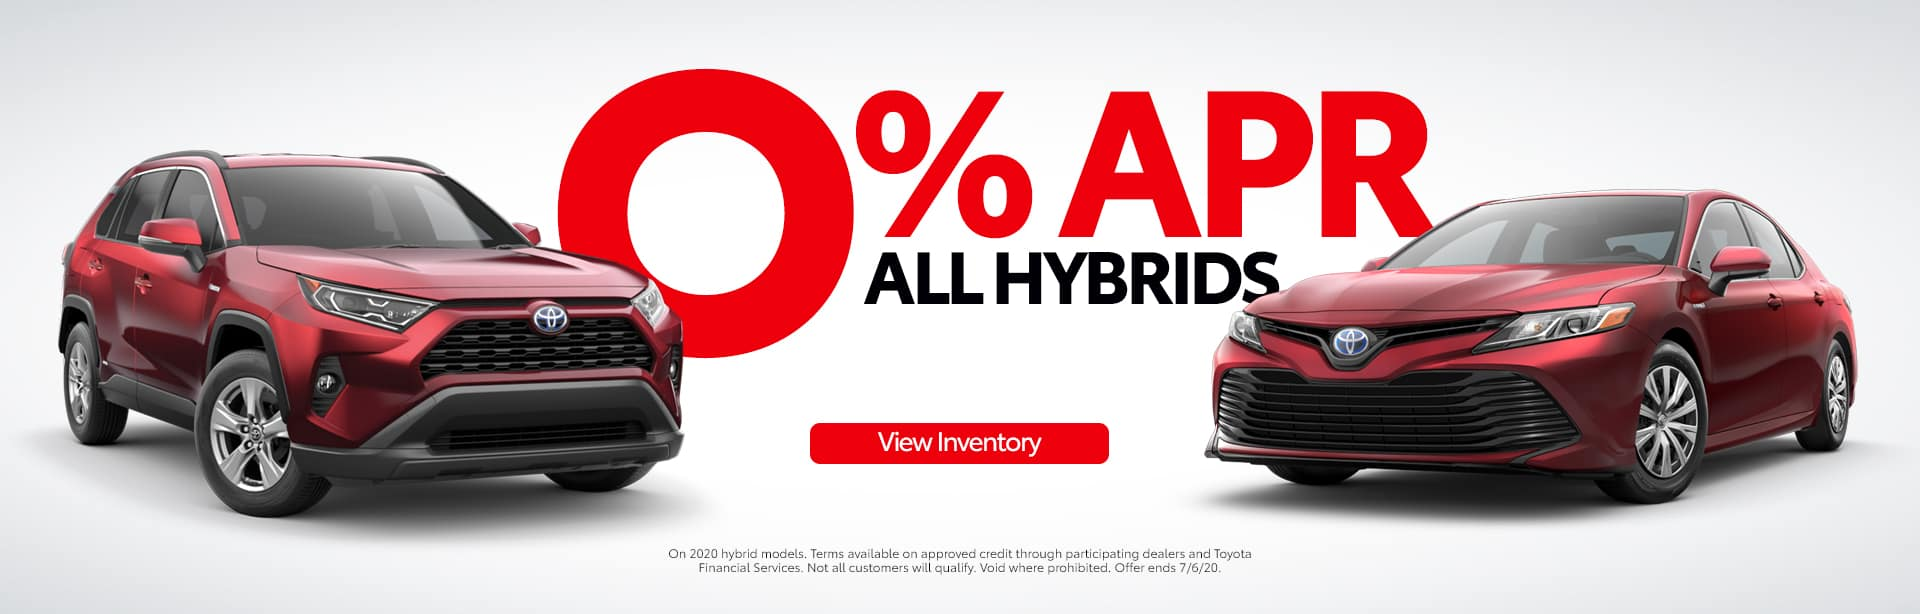 0% APR for 60 months on Toyota Hybrid